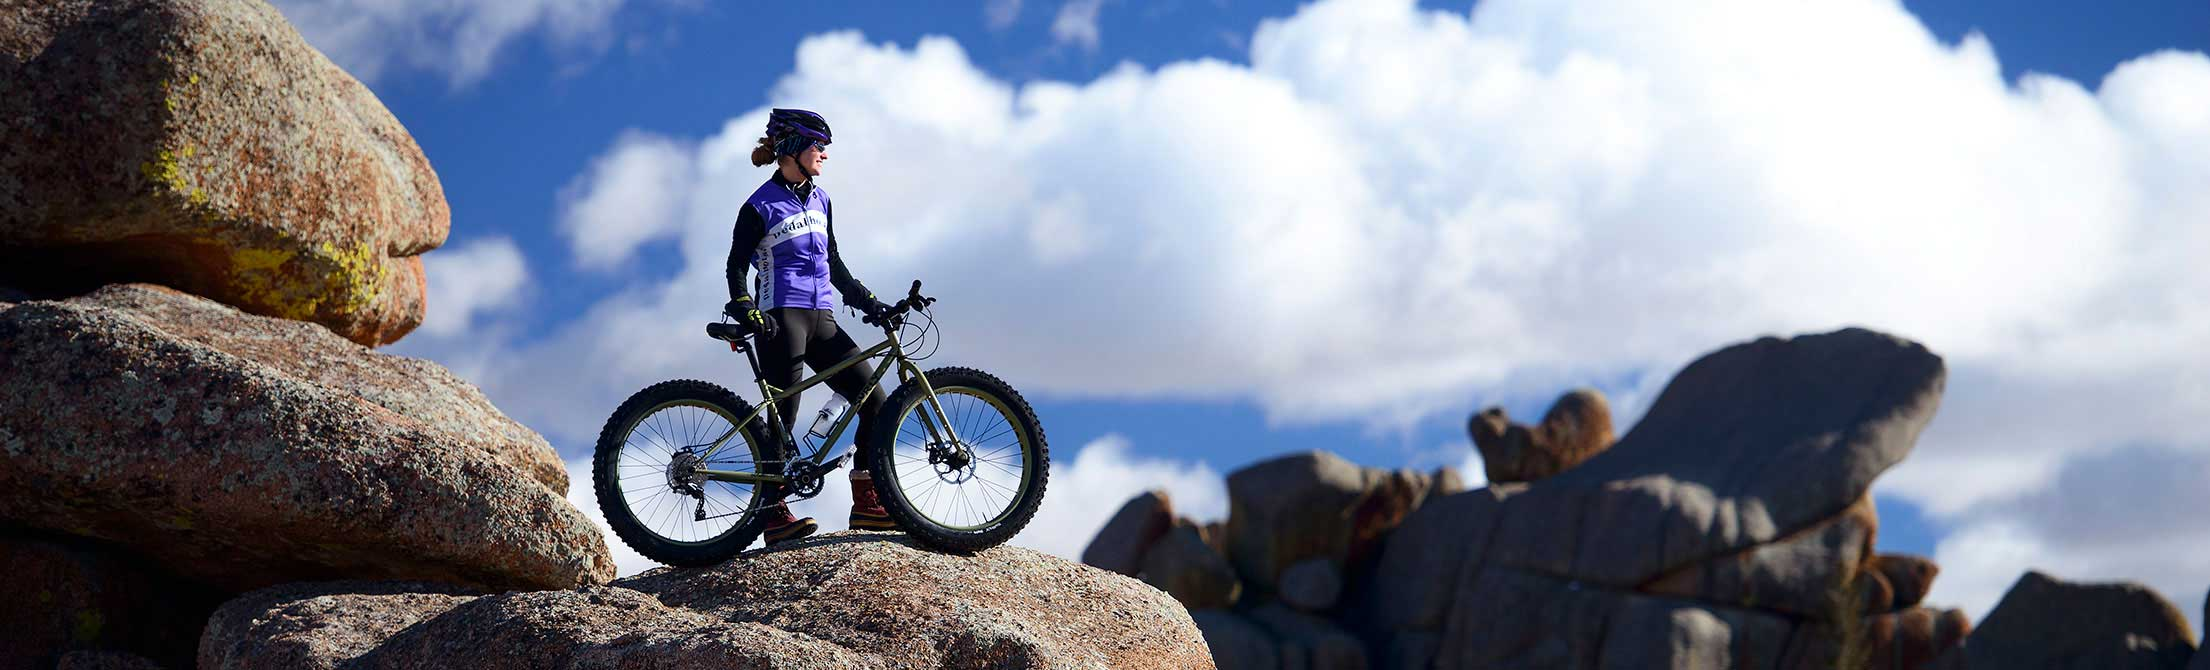 Biker on top of large rock formation on mountain